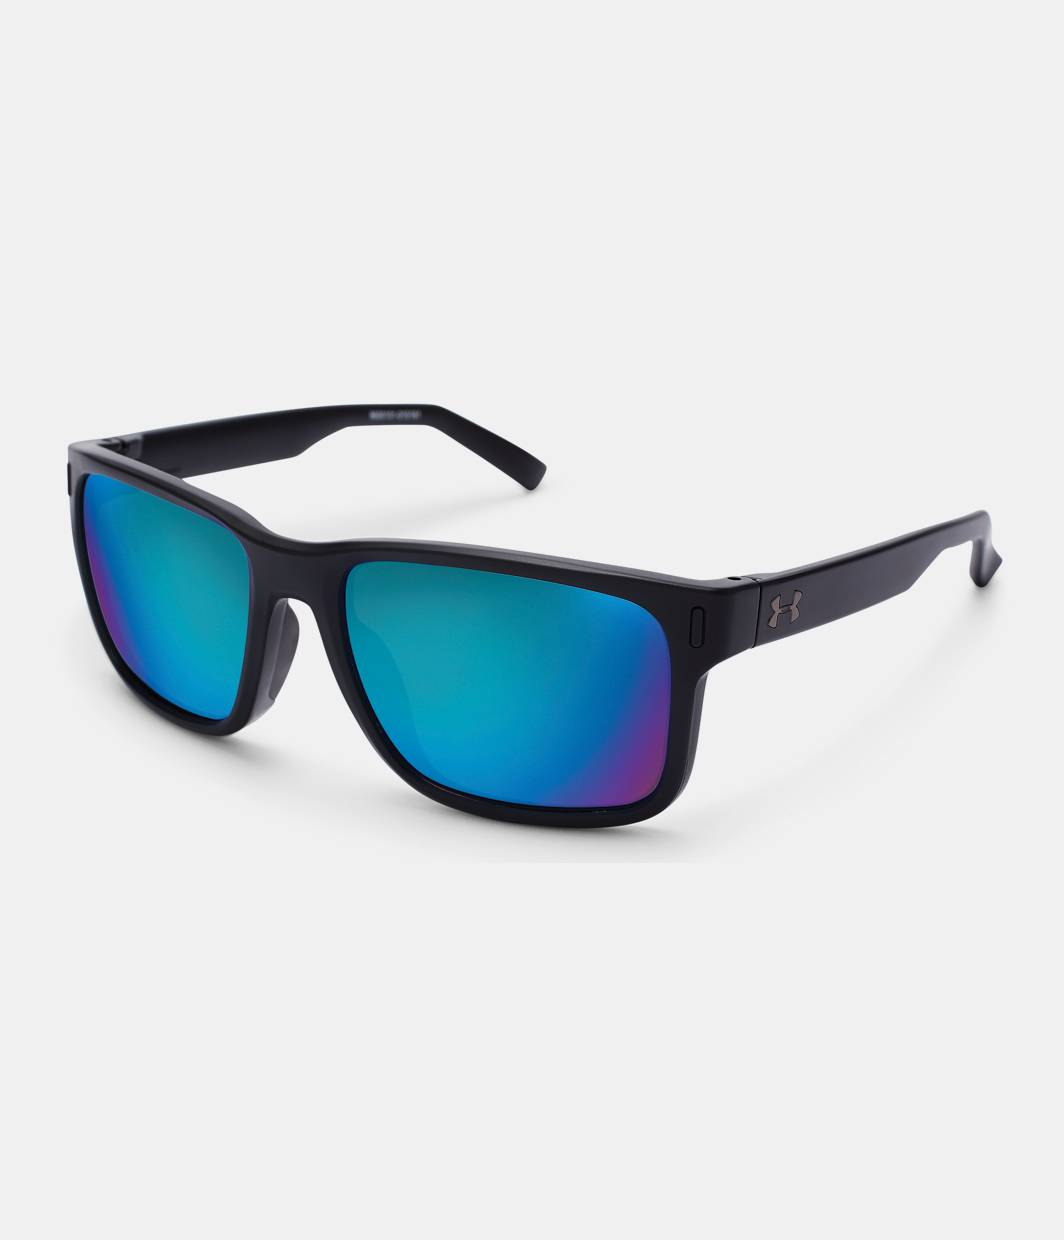 ua assist multiflection sunglasses 3 colors 8999